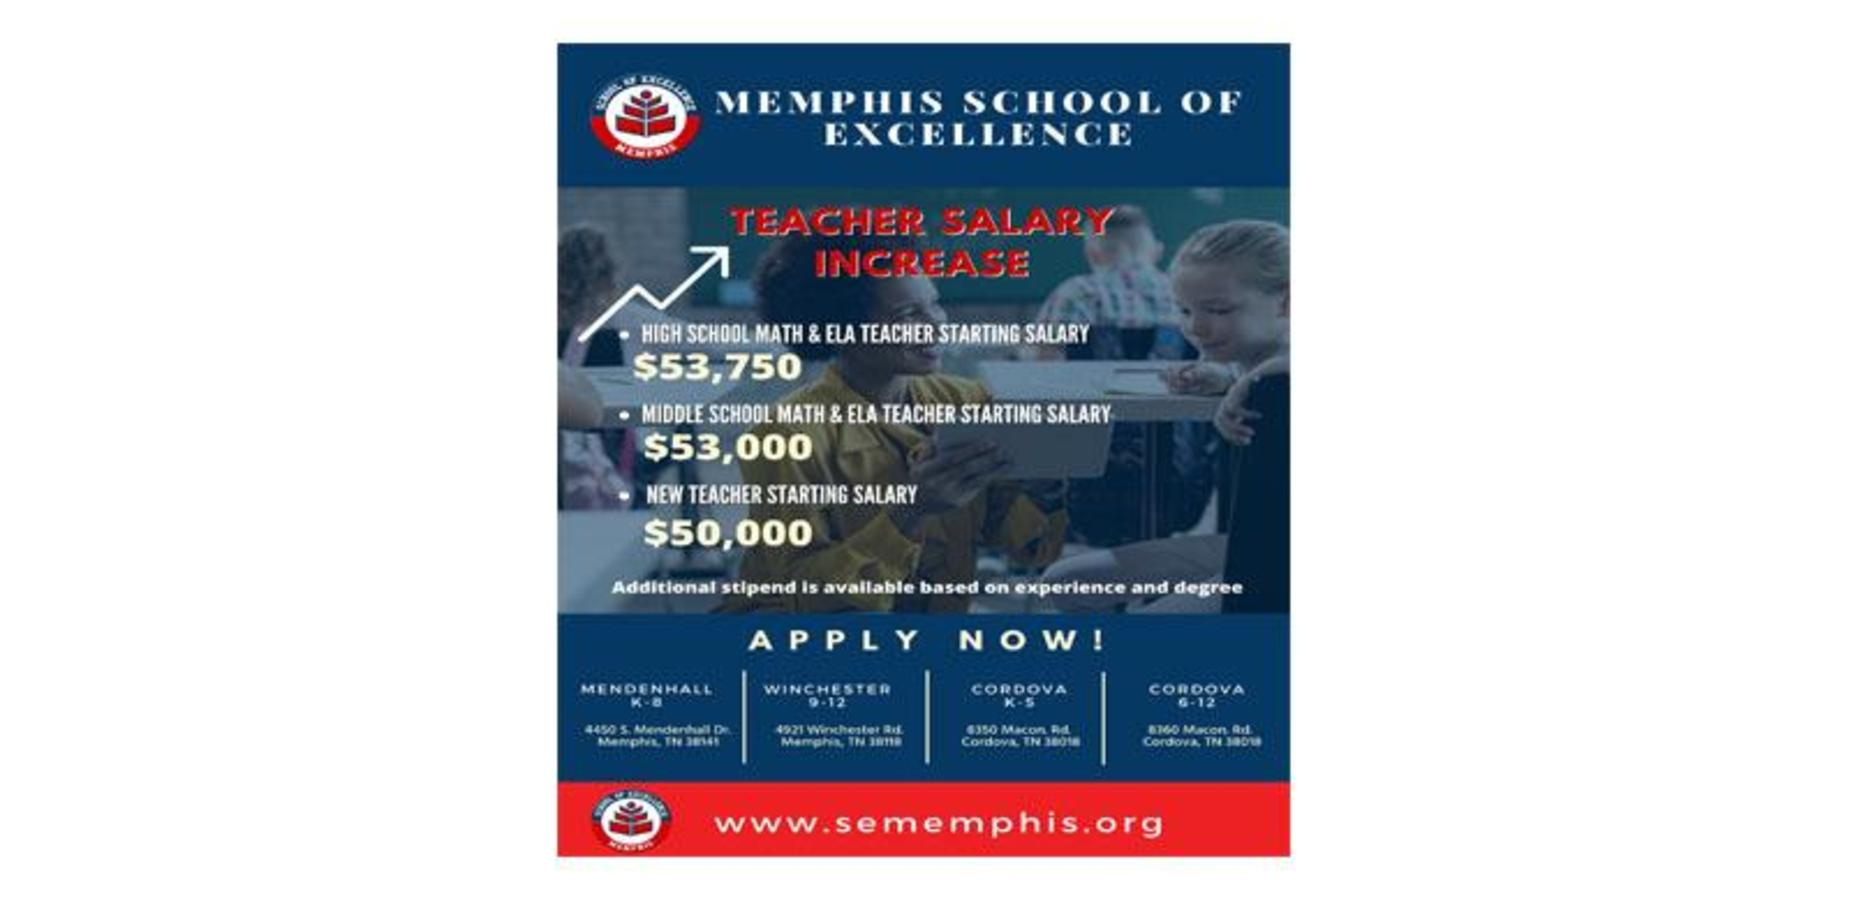 Teacher Salary Increase